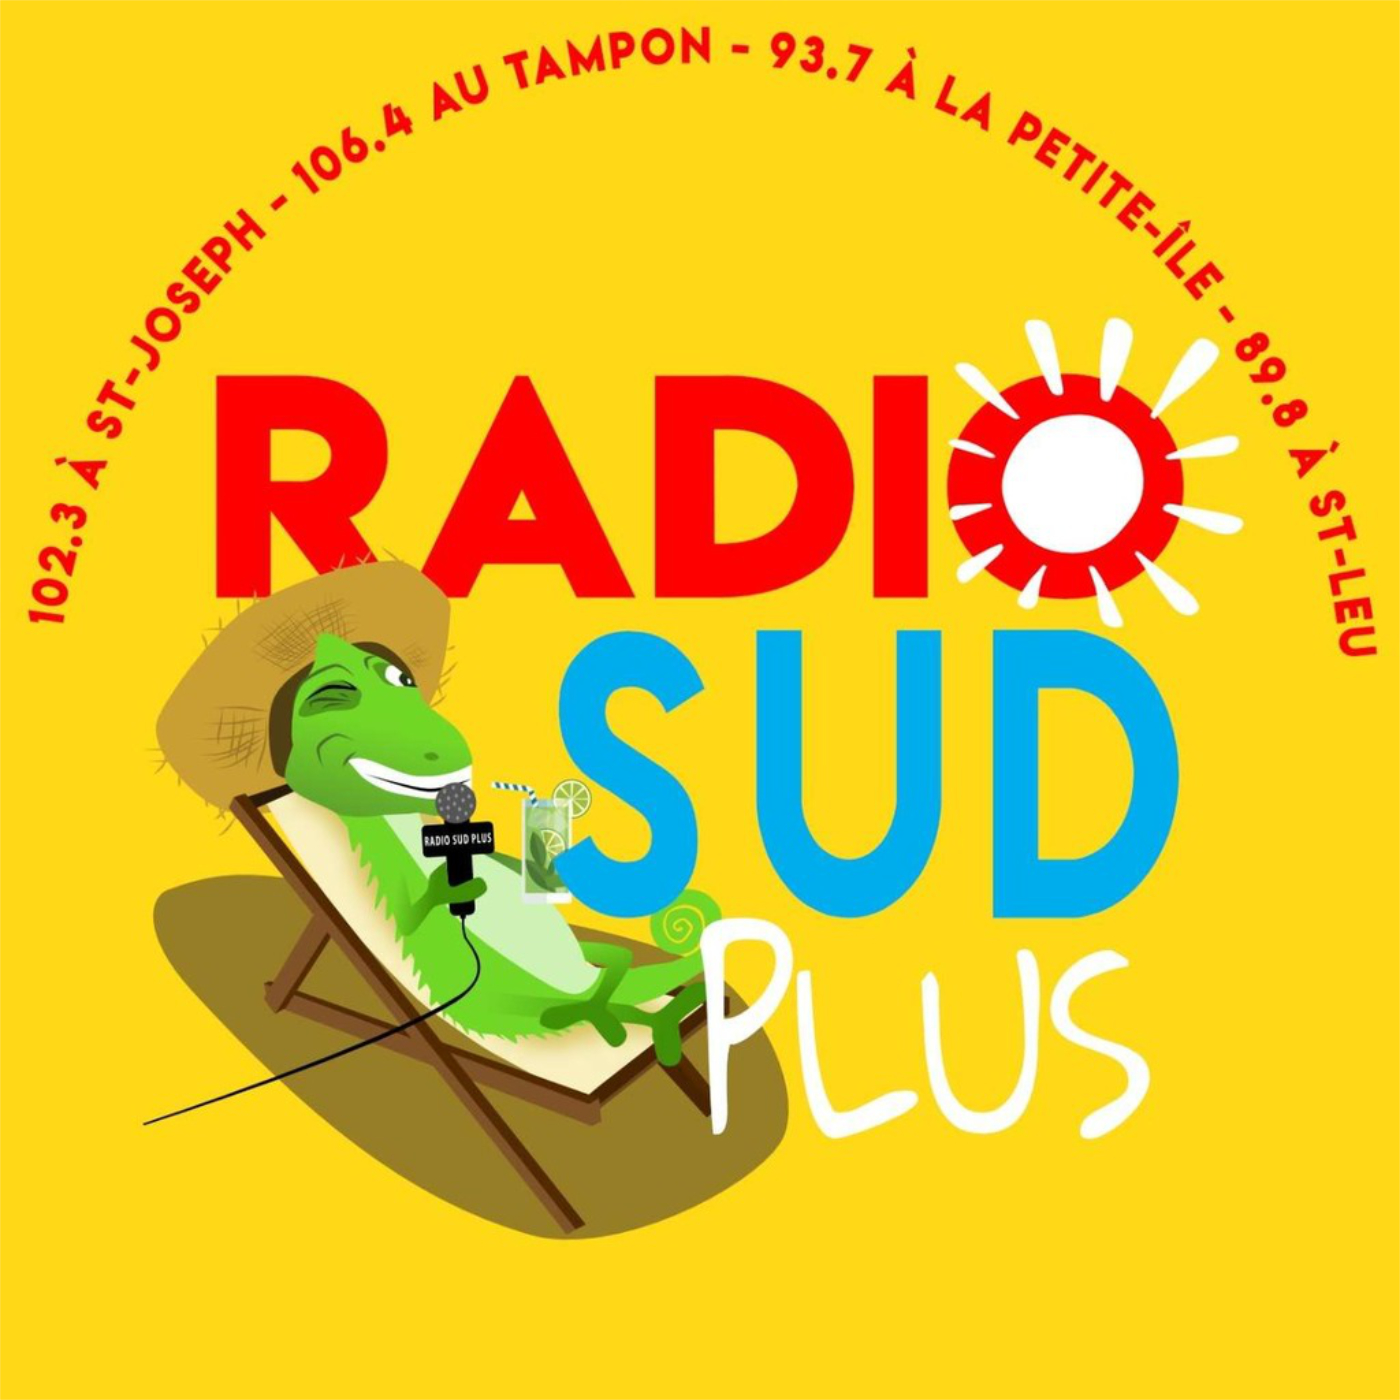 Association - Radio Sud Plus